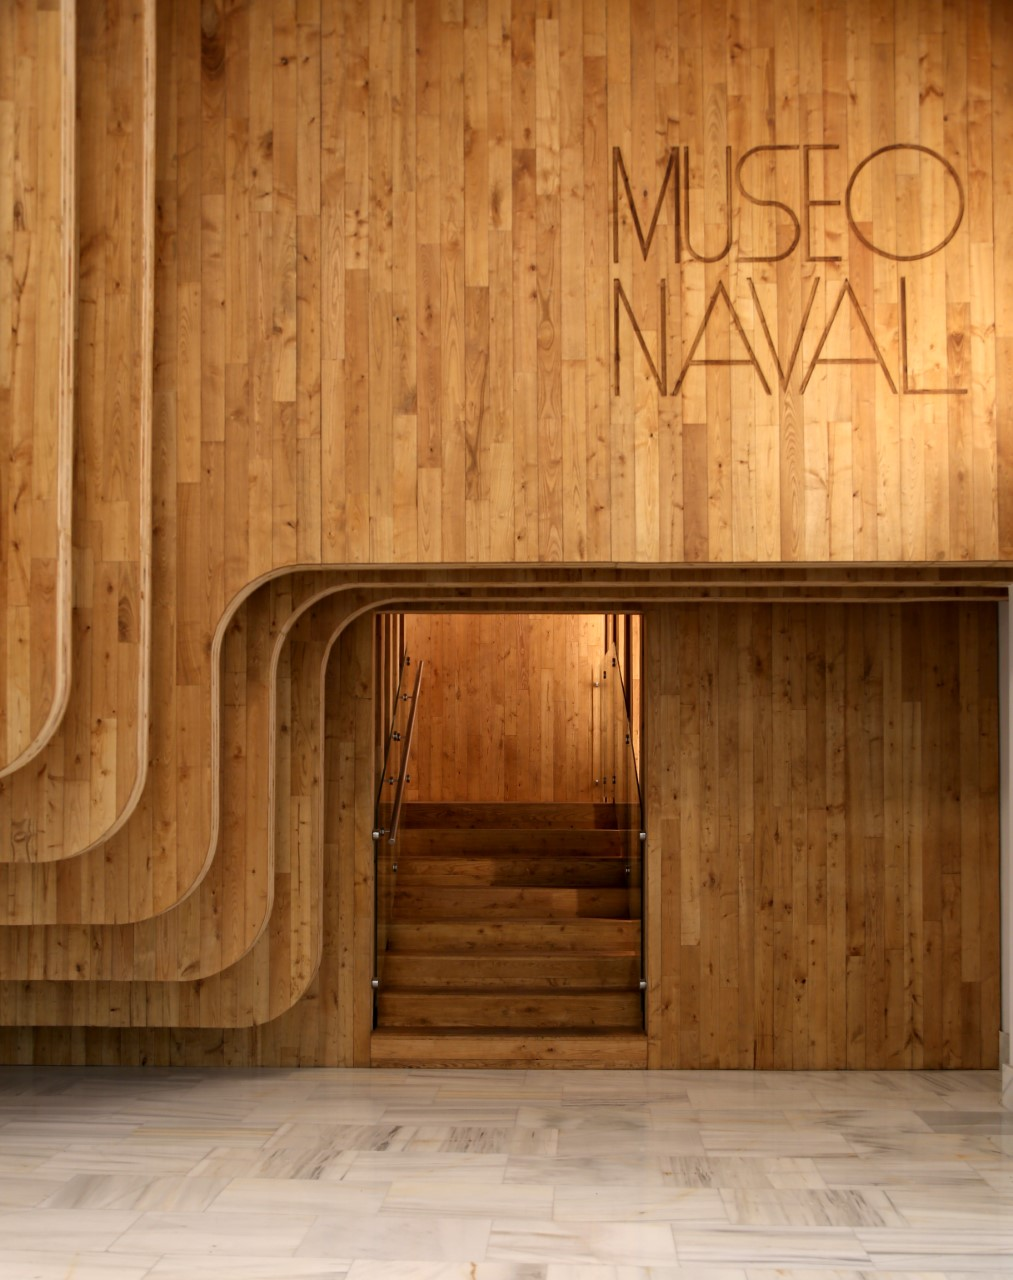 museo-naval-acceso.jpg